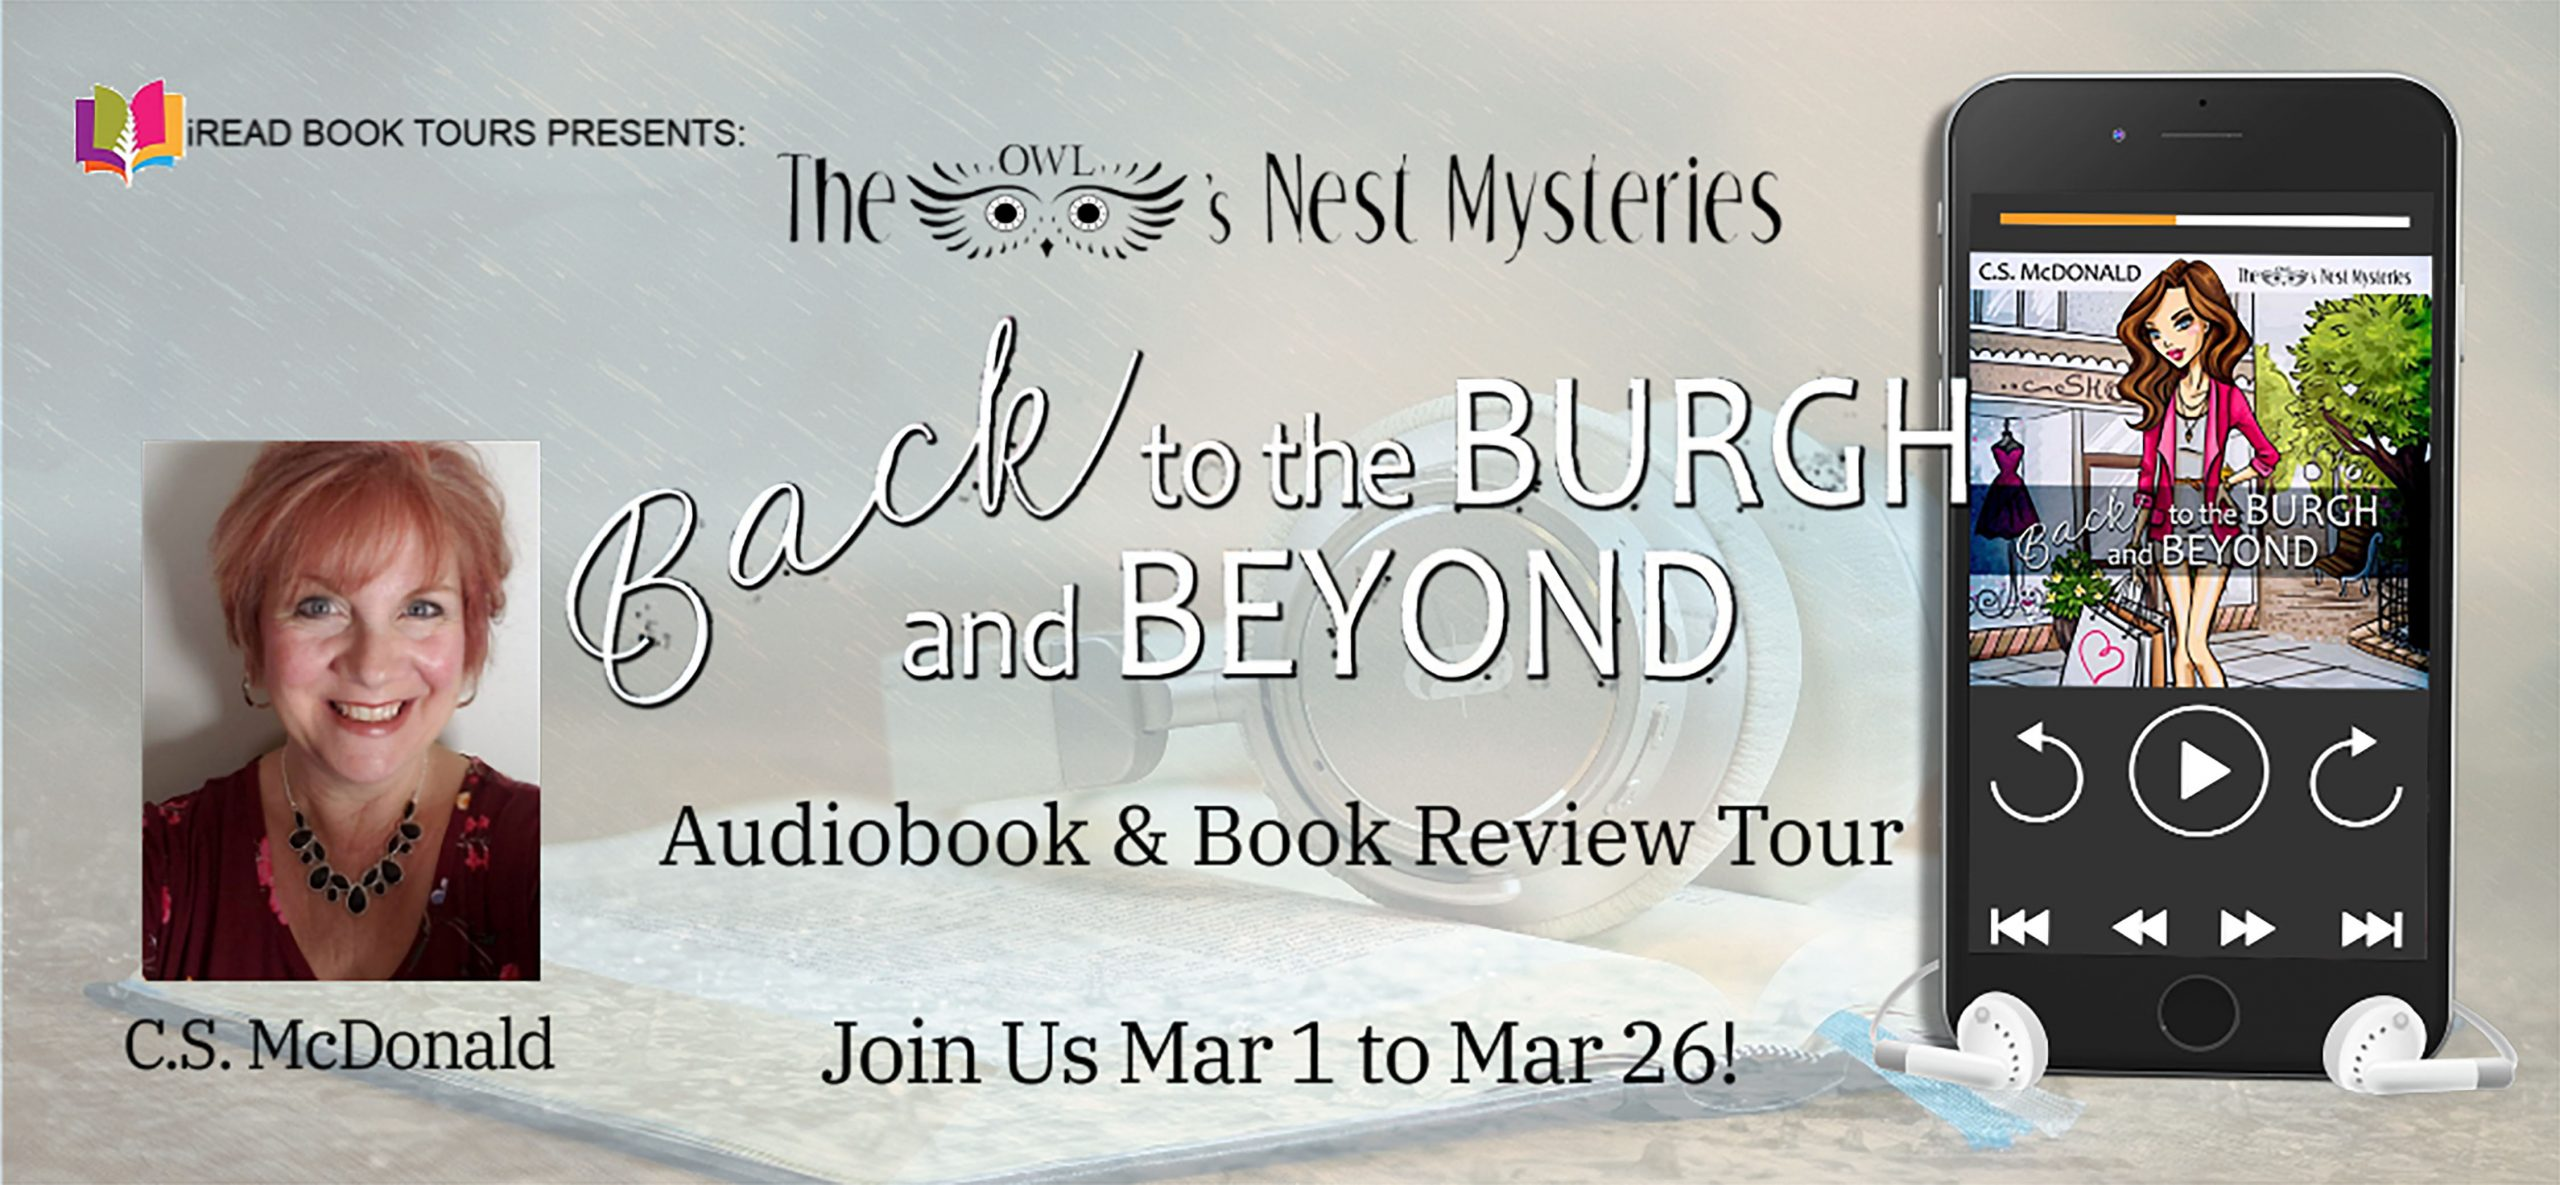 Back to the Burgh and Beyond – 5 Star Book Review